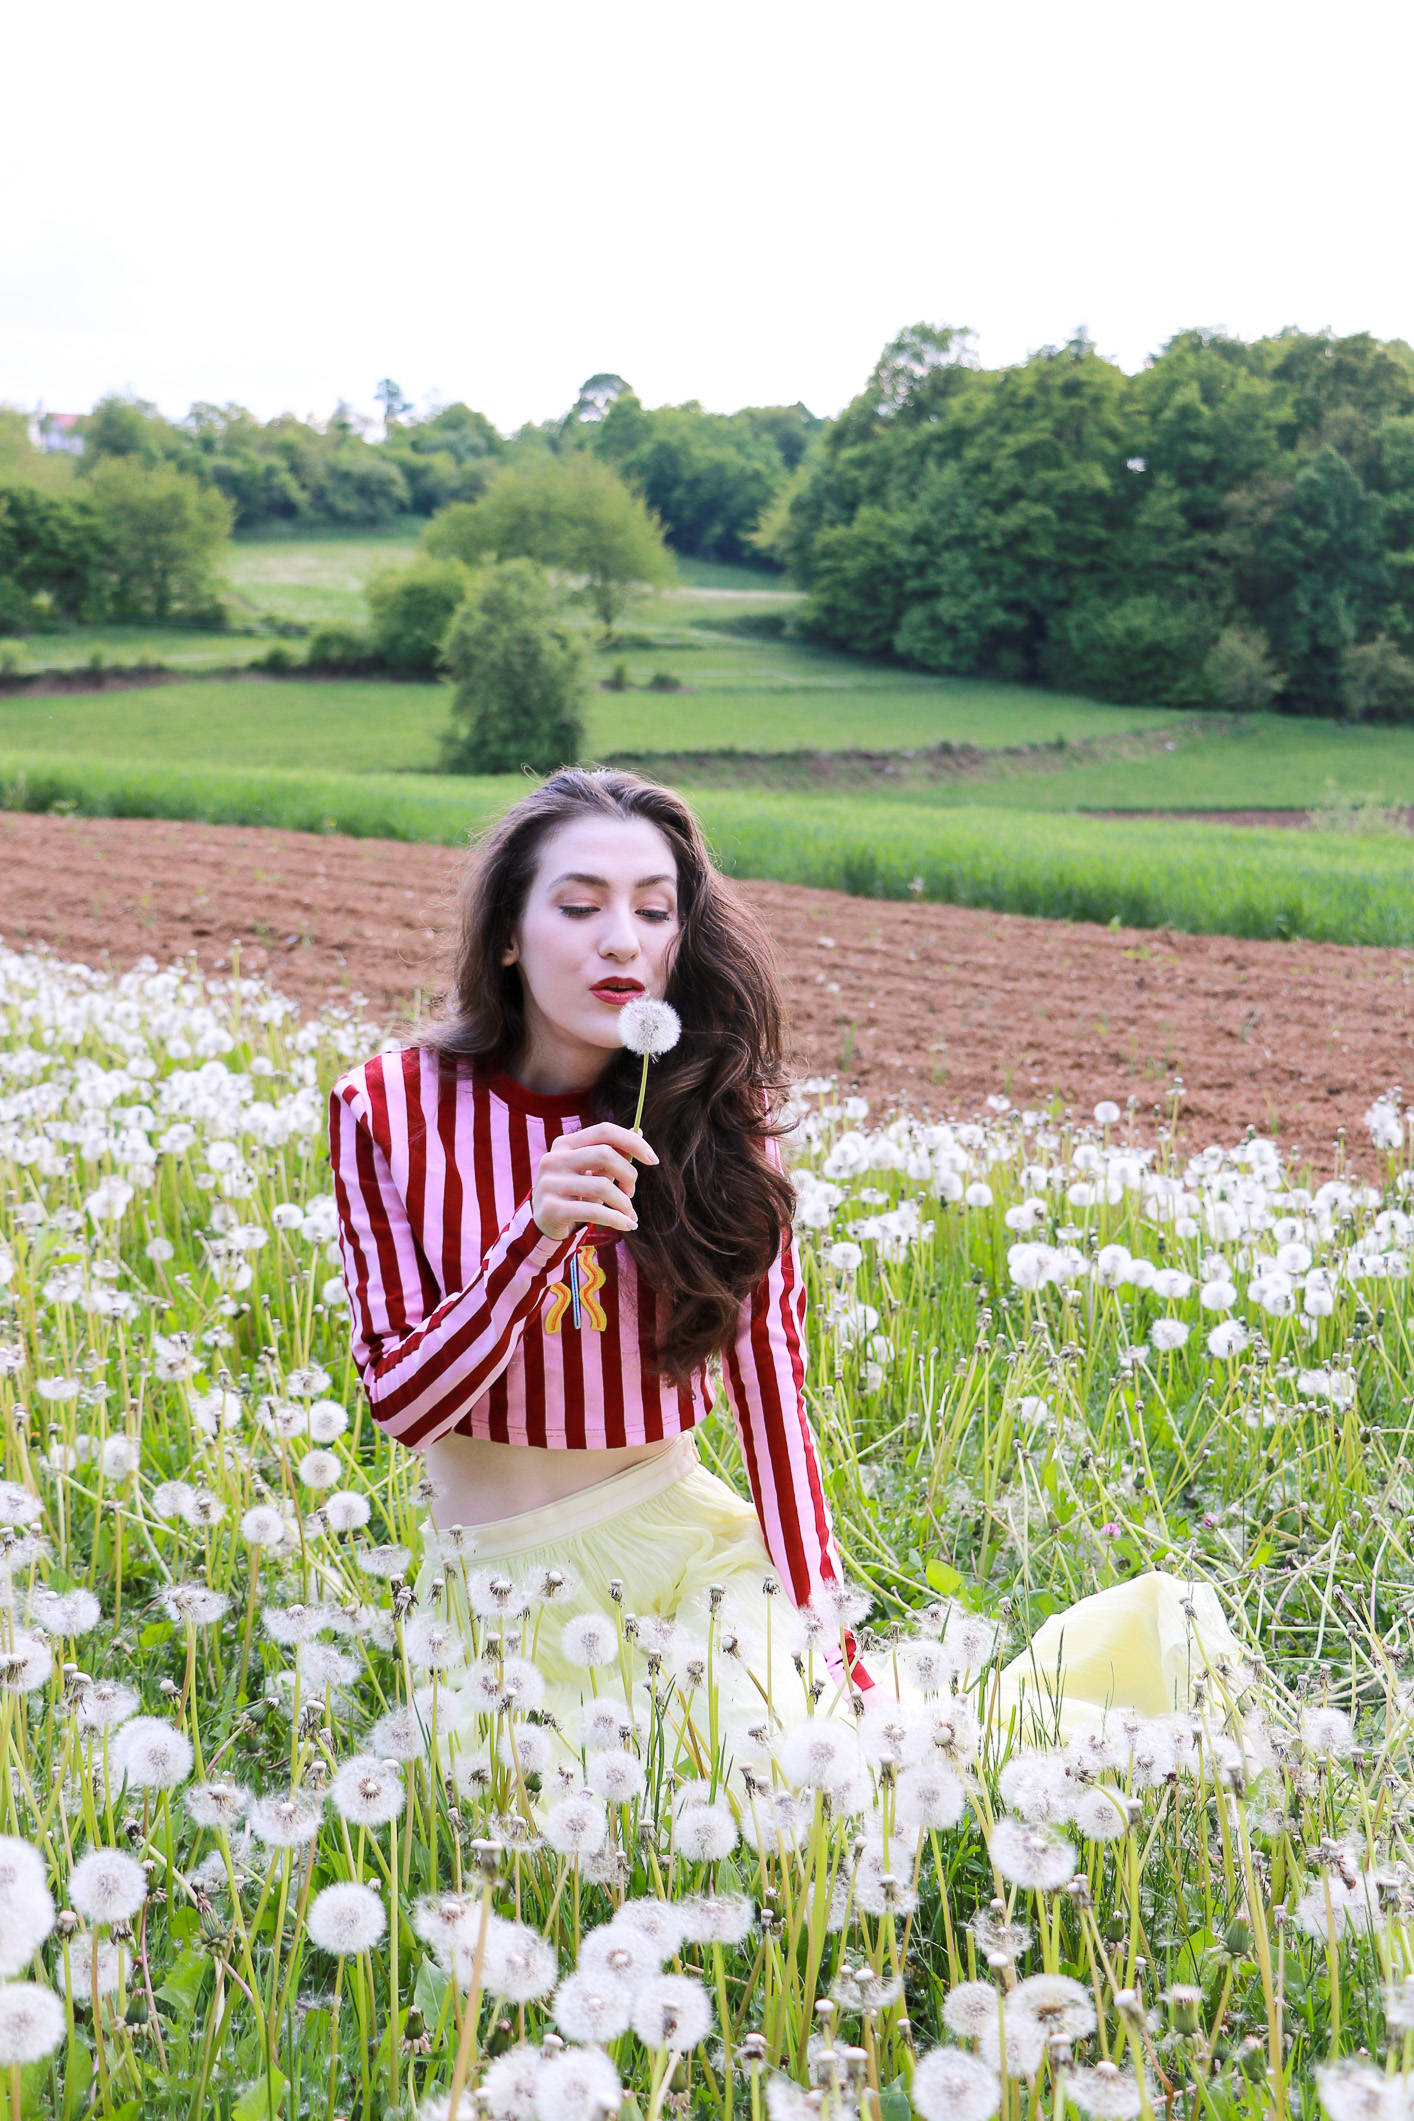 Fashion blogger Veronika Lipar of Brunette From Wall Street sitting in the field of dandelions making a wish dressed in long yellow tulle skirt and pink and red striped cropped top